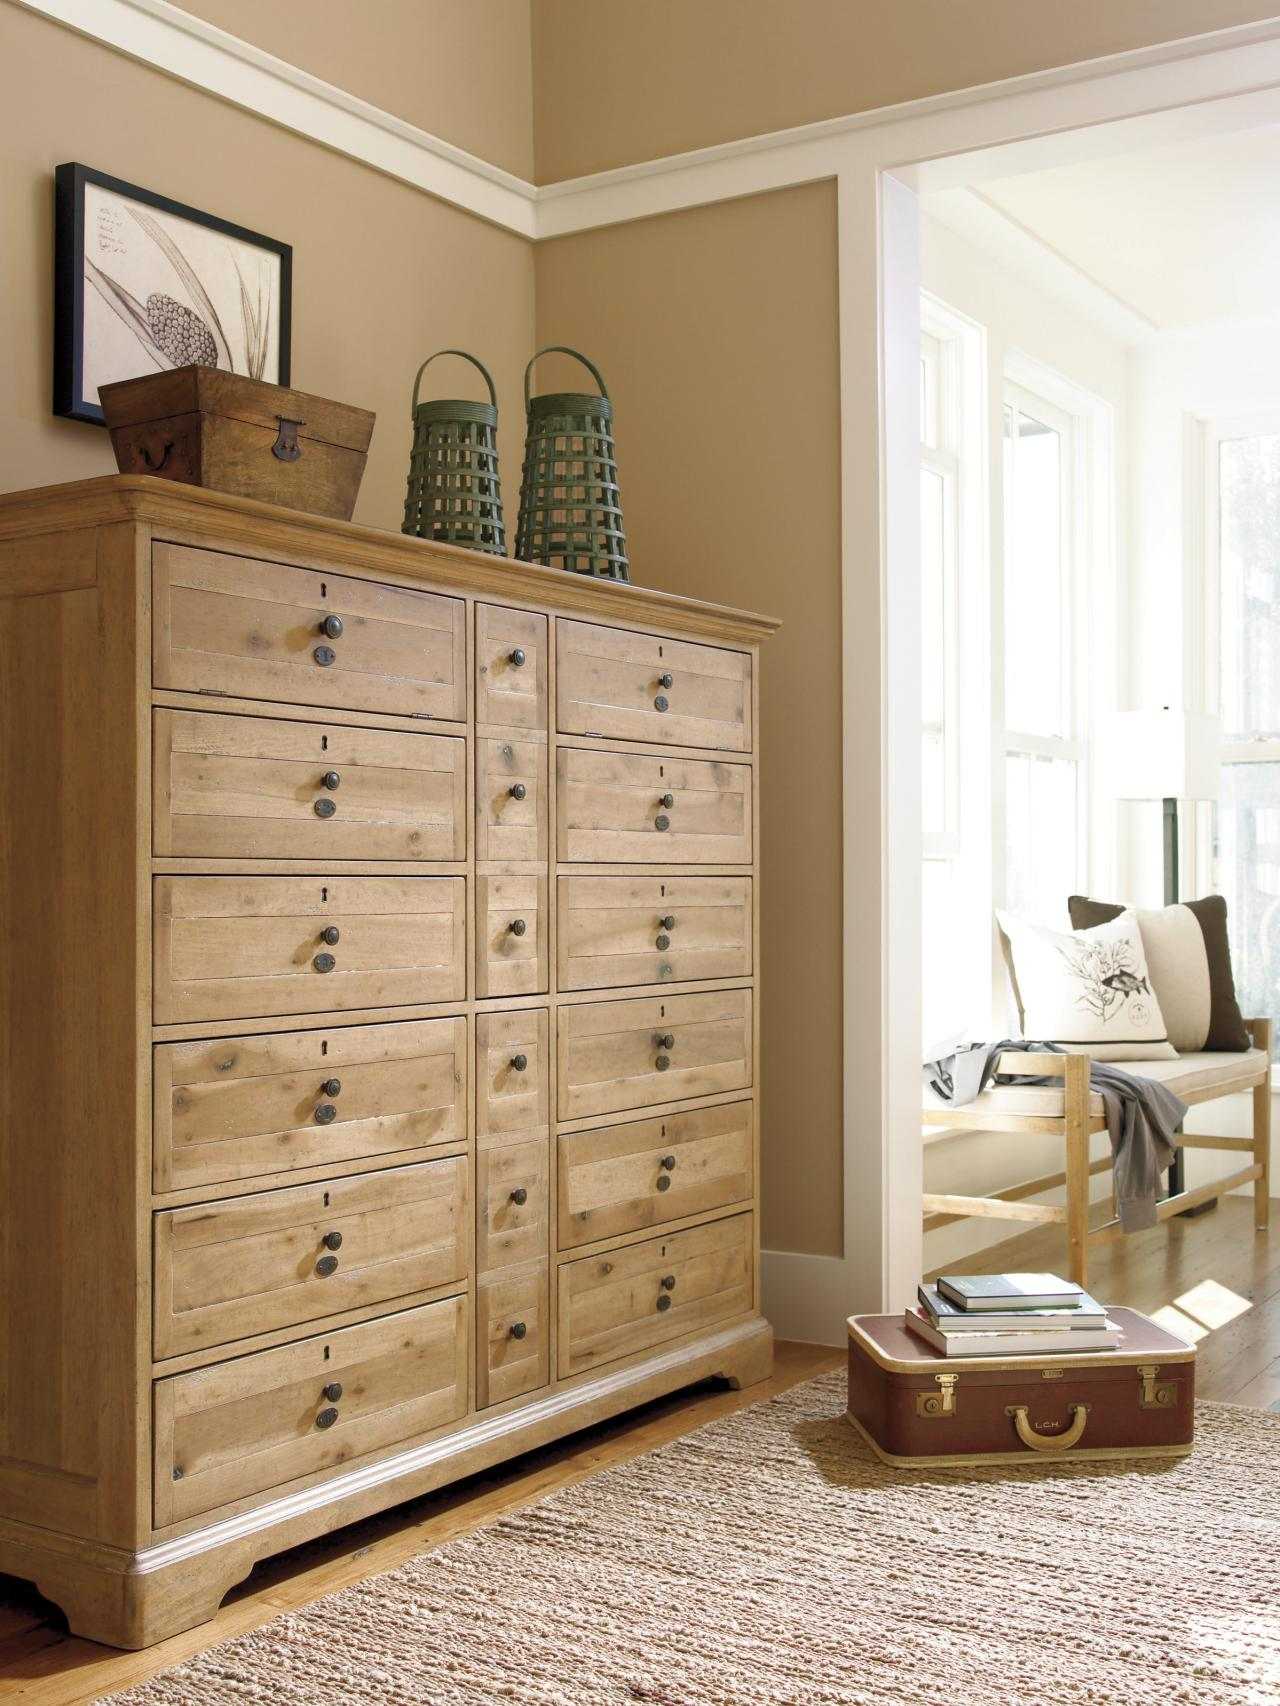 Best Seven Tips From Hgtv On How To Shop For A Dresser Hgtv This Month